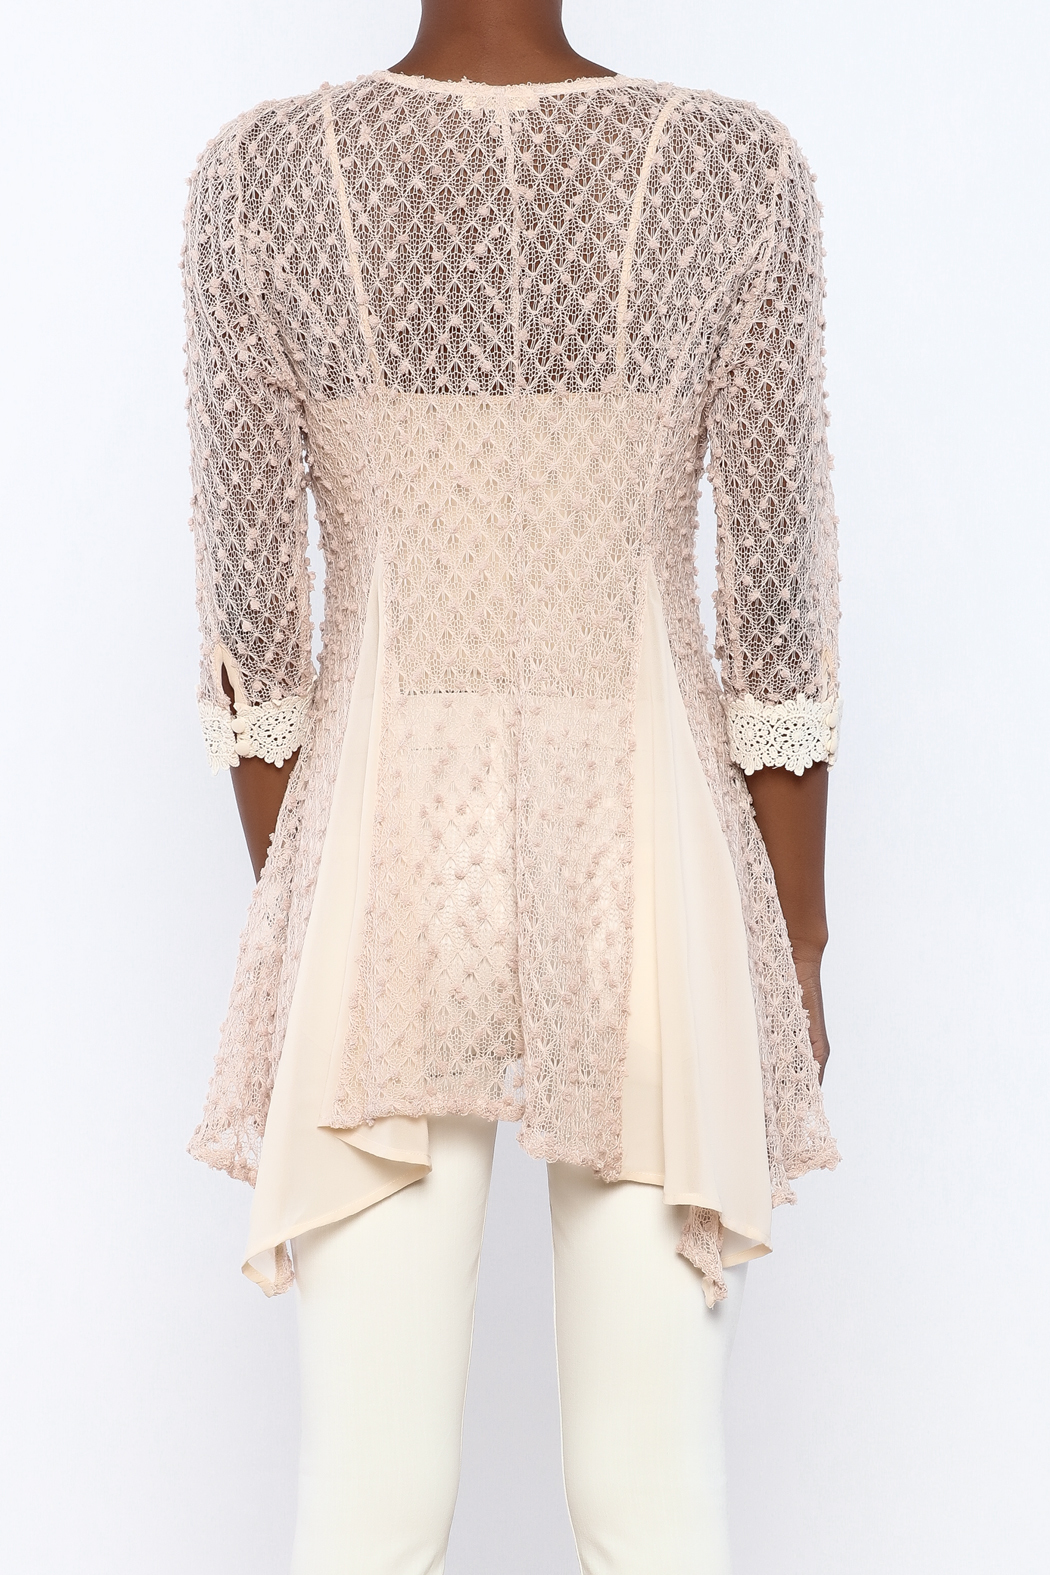 fefc6e168cdca8 The Vintage Valet Pink Crochet Top from Pittsburgh — Shoptiques